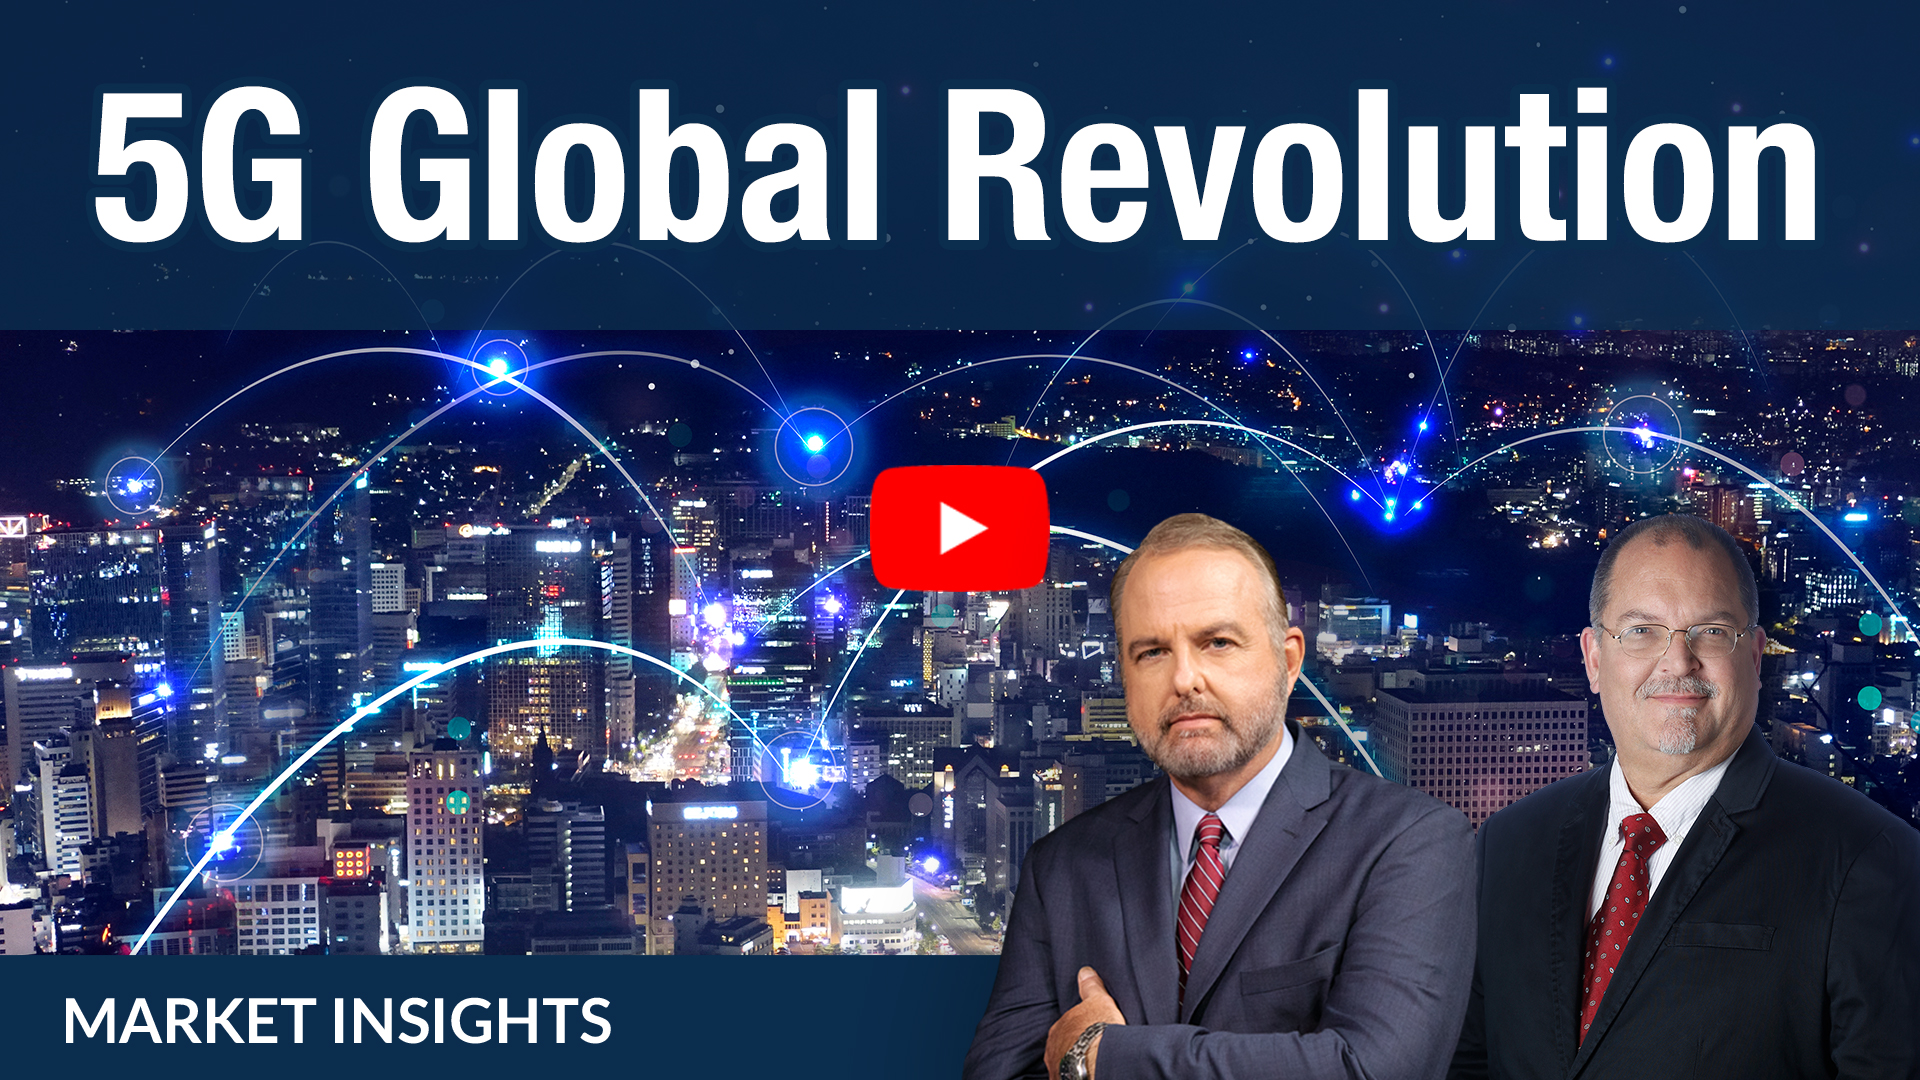 Experts Jeff Yastine and Ted Bauman discuss some of 5G's hottest investment opportunities, and why this new technology is truly a global revolution.